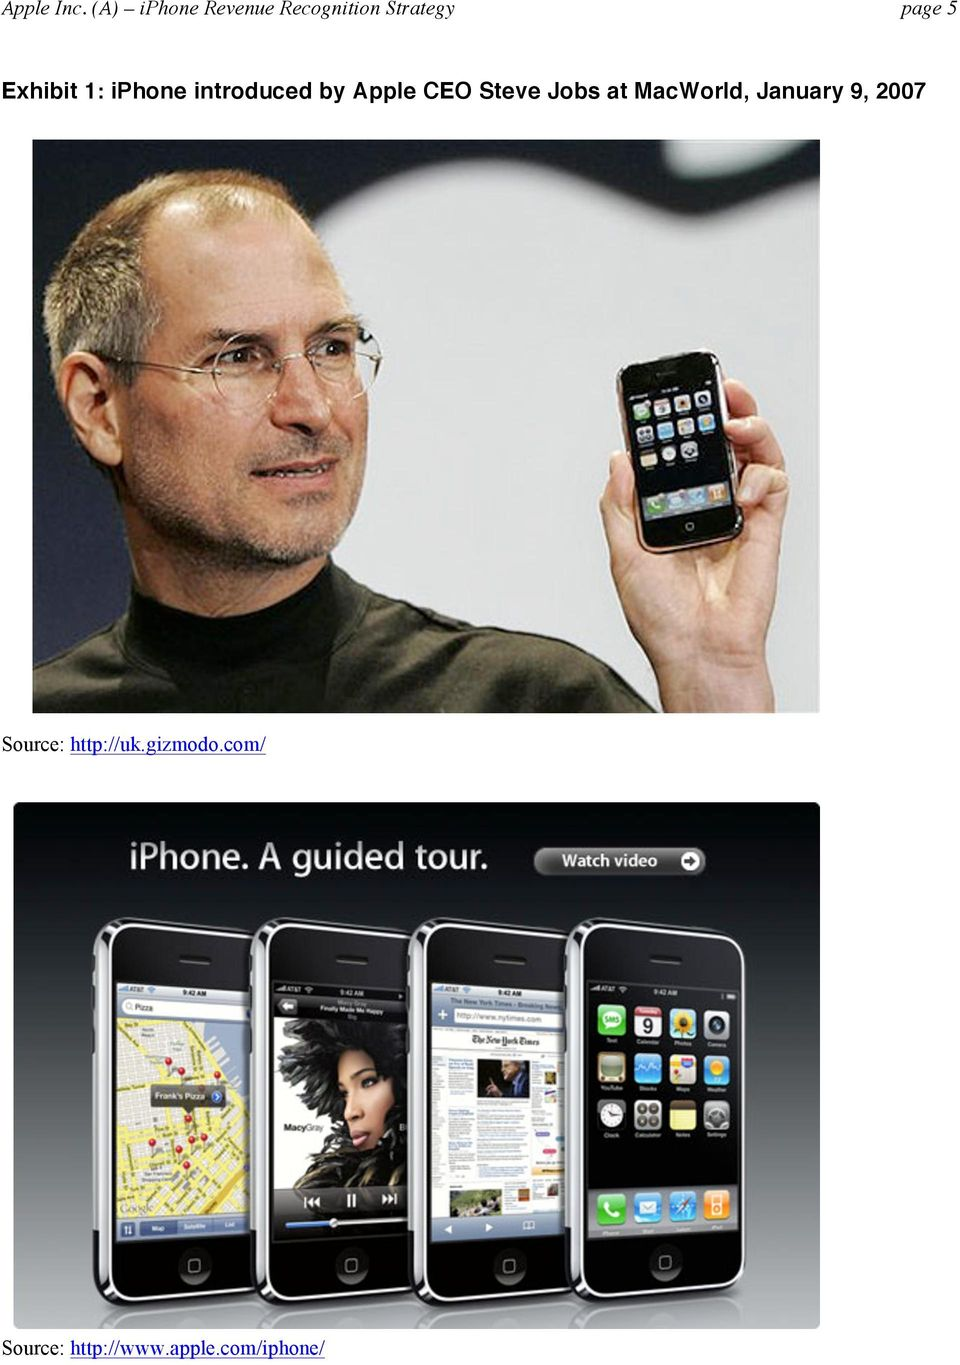 Exhibit 1: iphone introduced by Apple CEO Steve